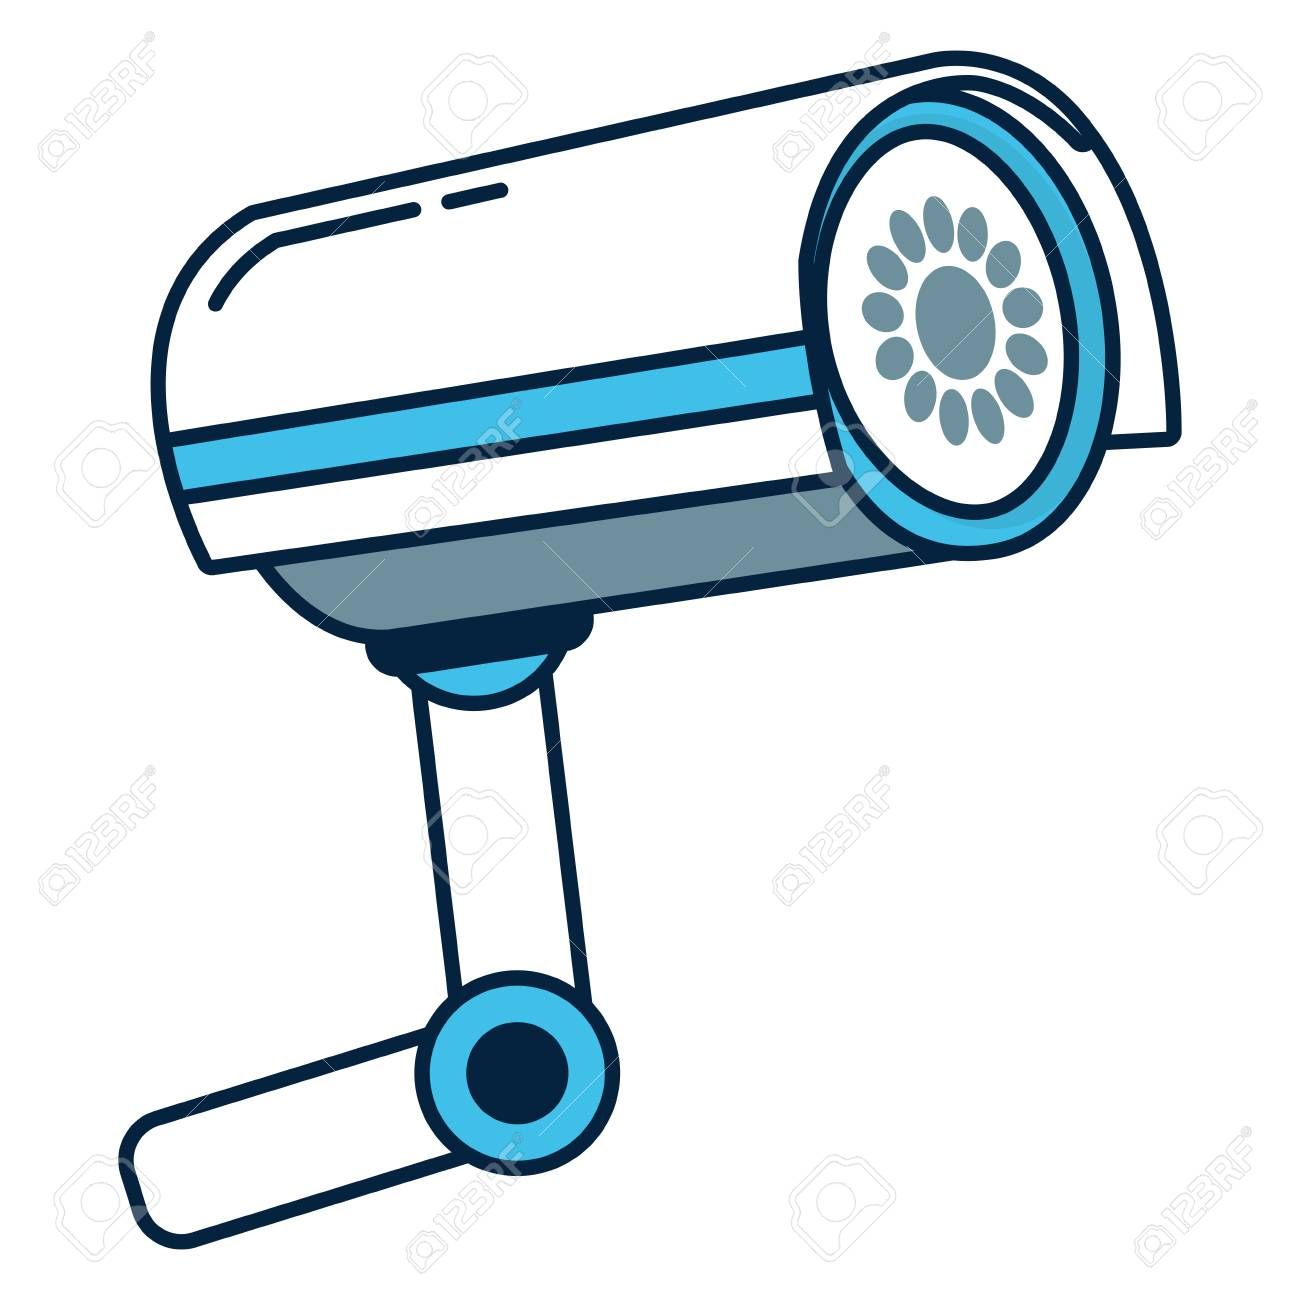 Security Camera Graphic